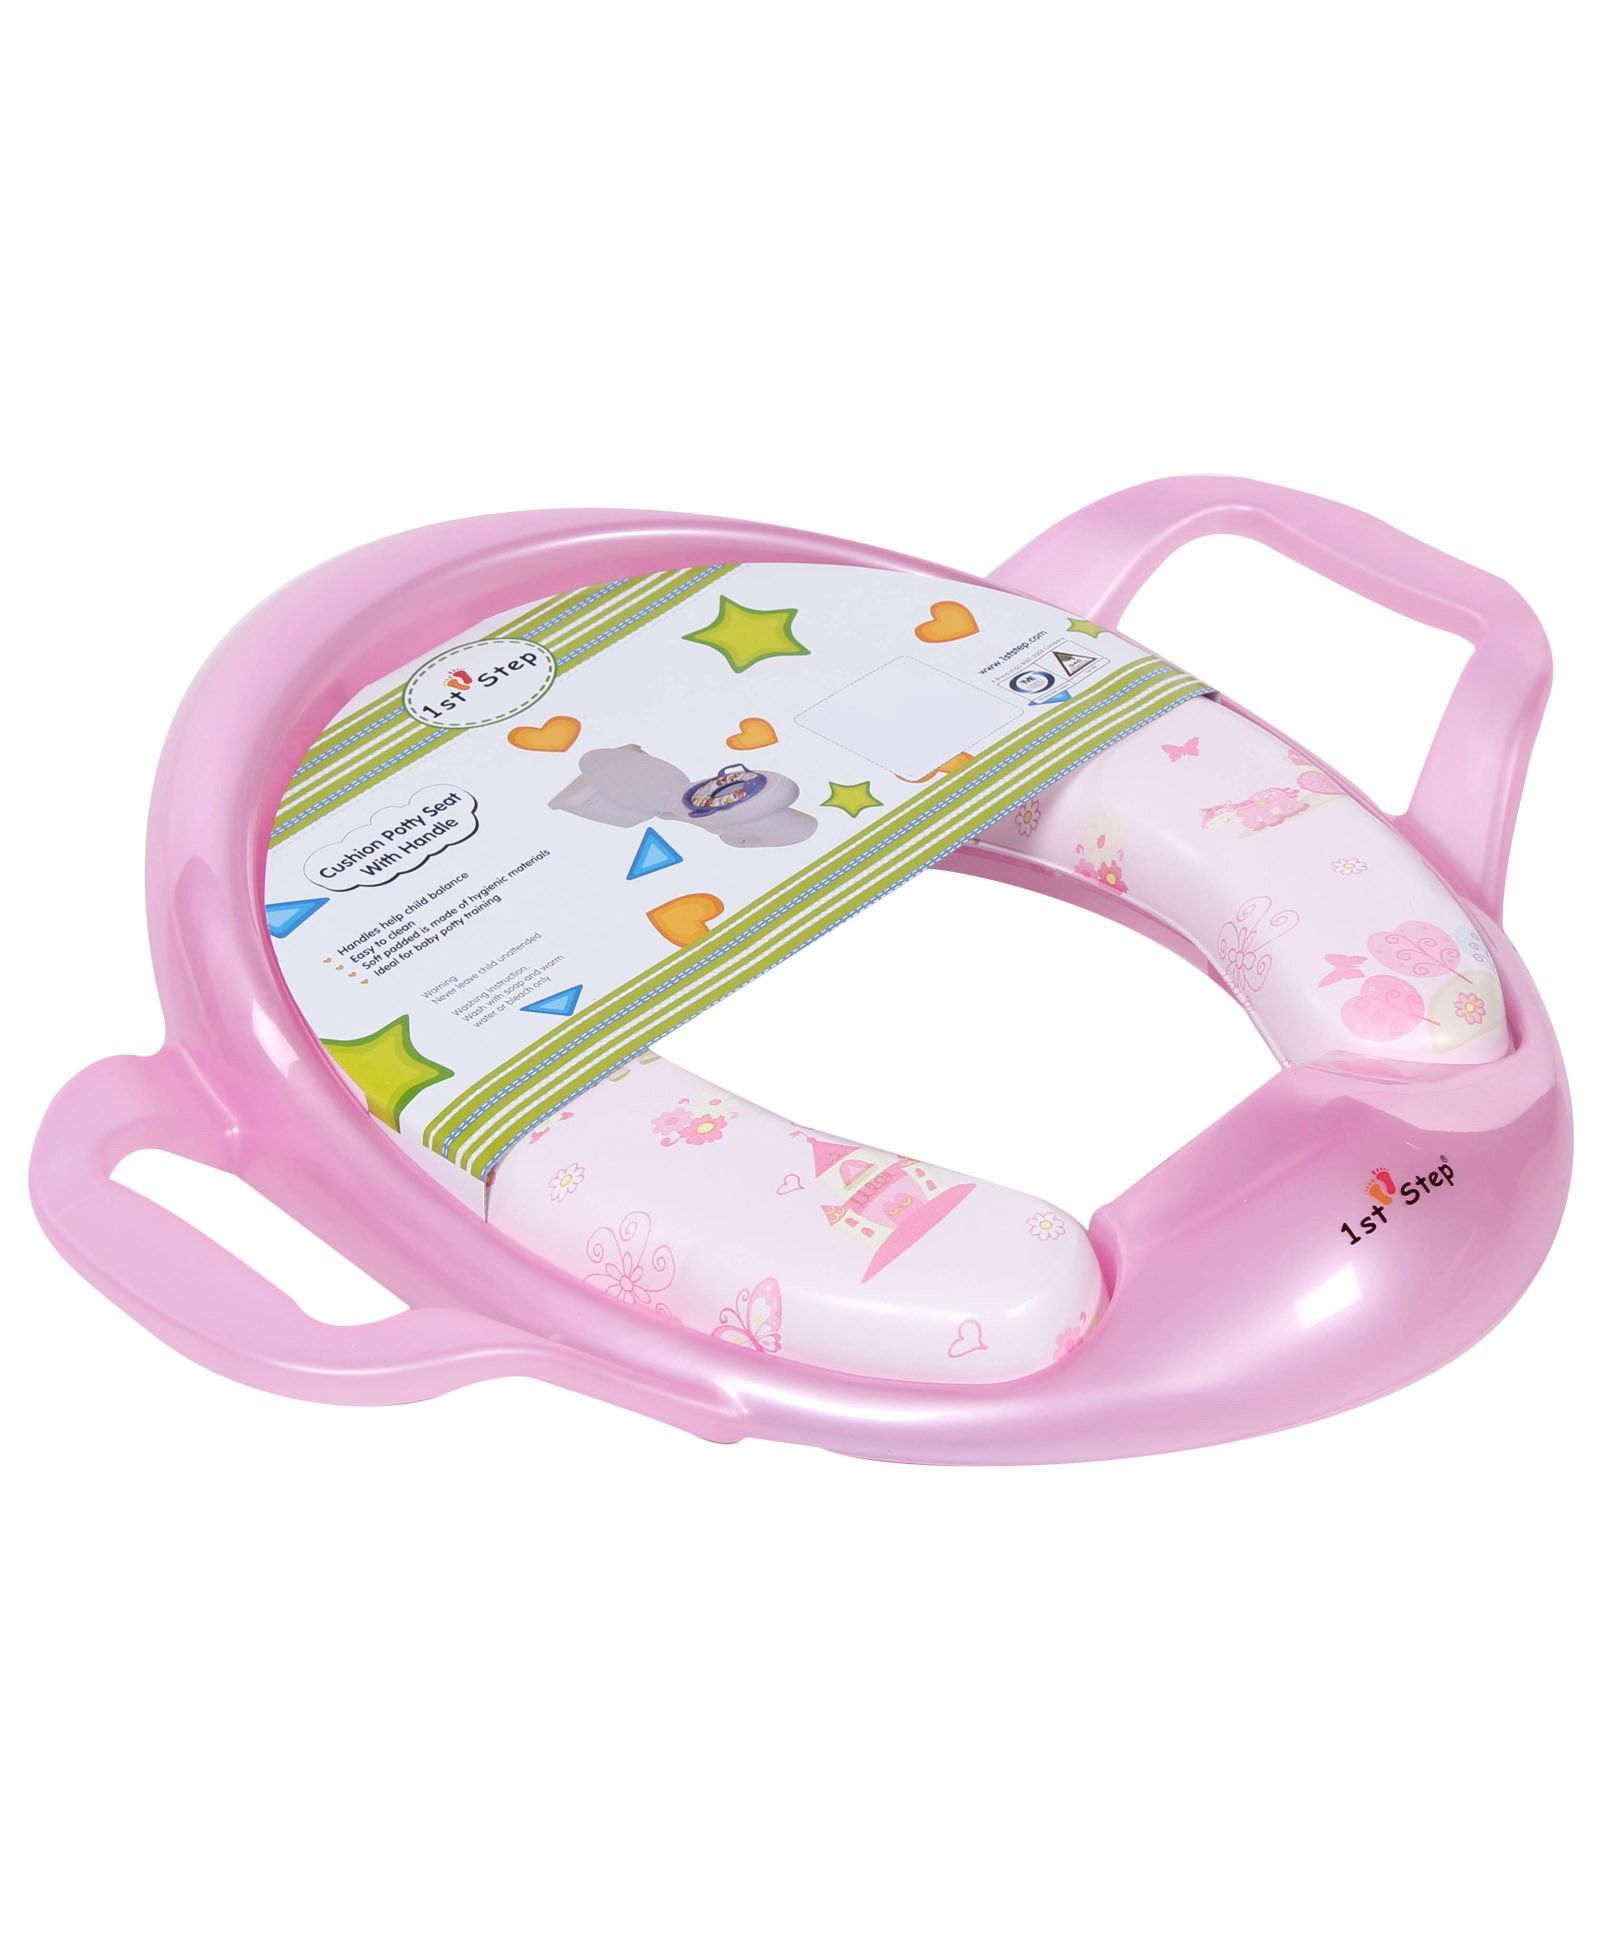 1st Step Cushion Potty Seat With Handle - Pink